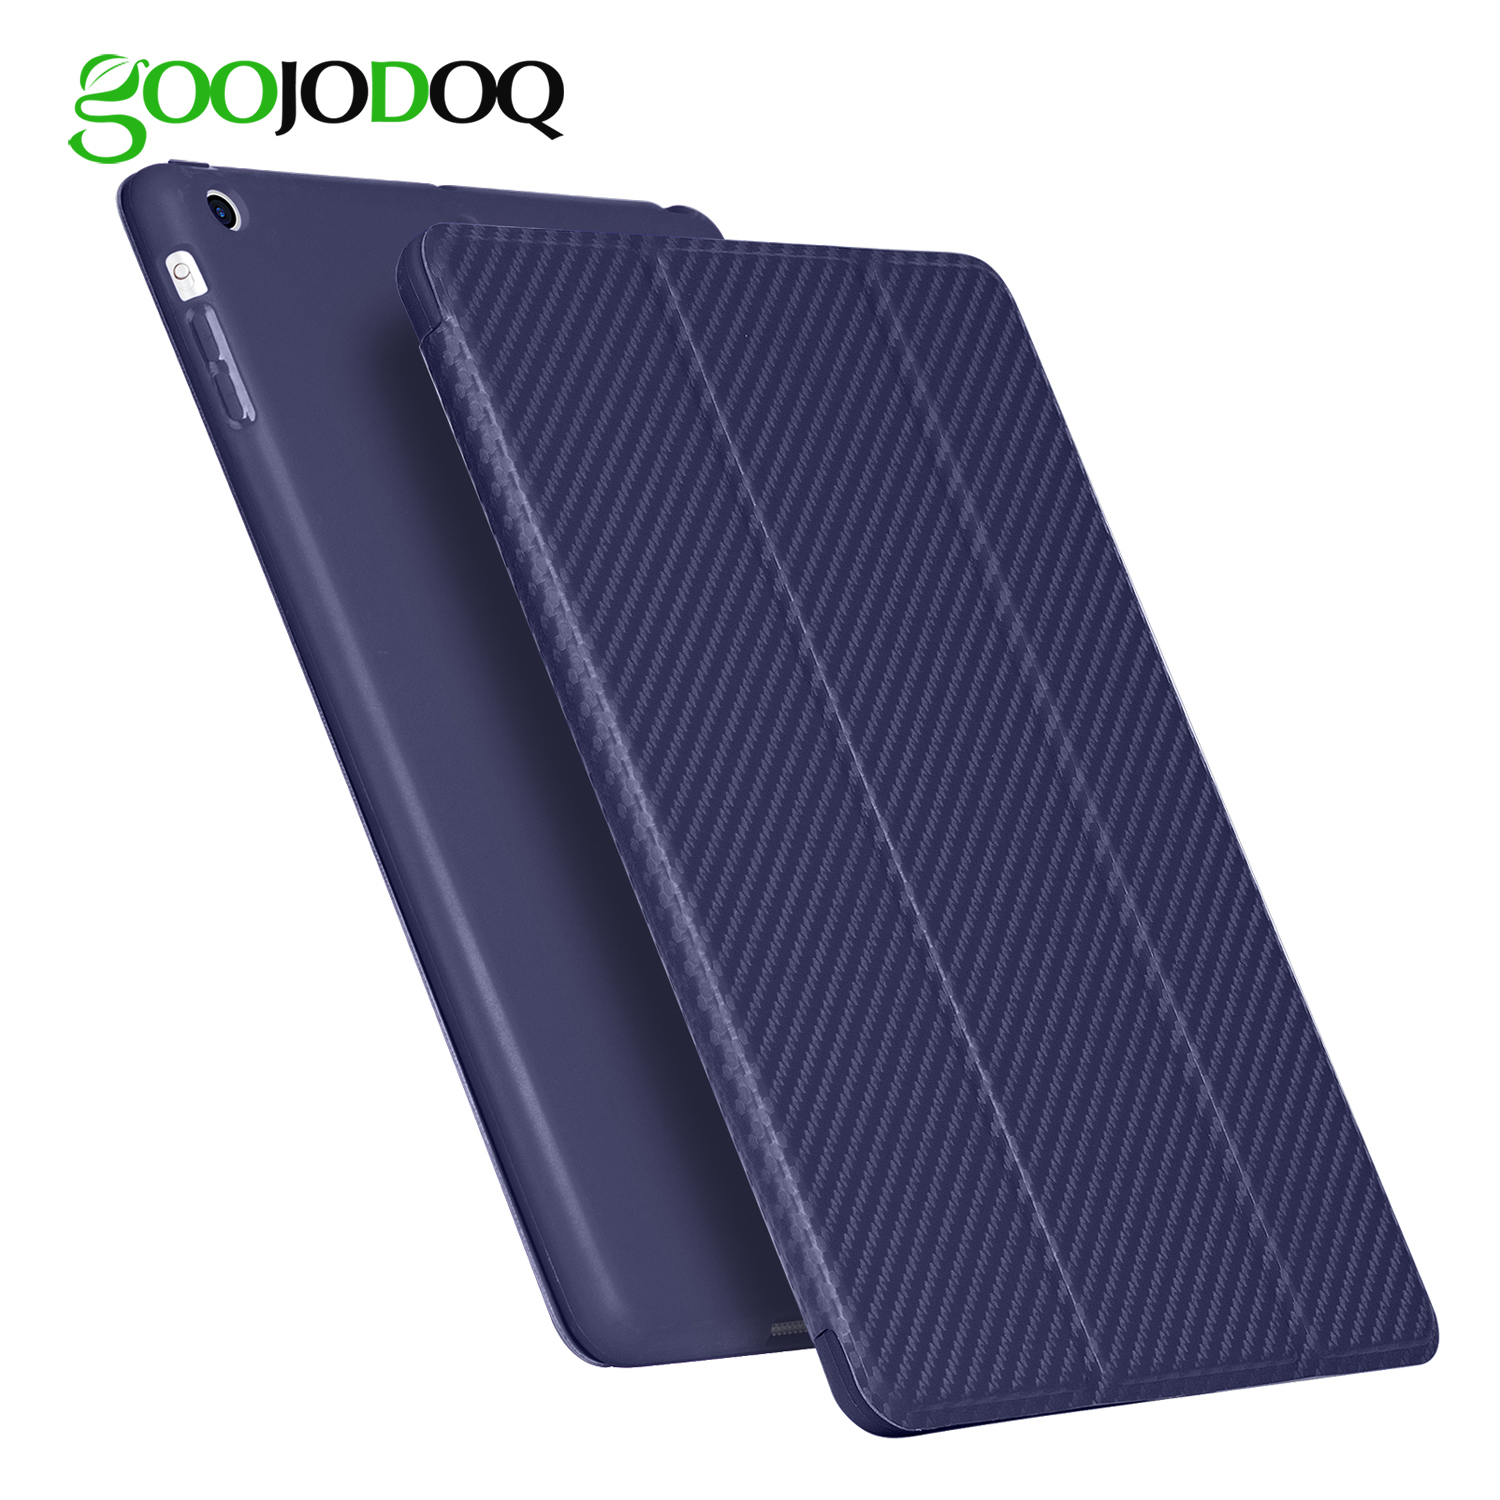 IPad Air үшін Case 2, Apple iPad Air үшін GOOJODOQ силиконовый қапшық 2 iPad 6 PU былғары Smart Cover A1566 A1567 Auto Sleep / Wake